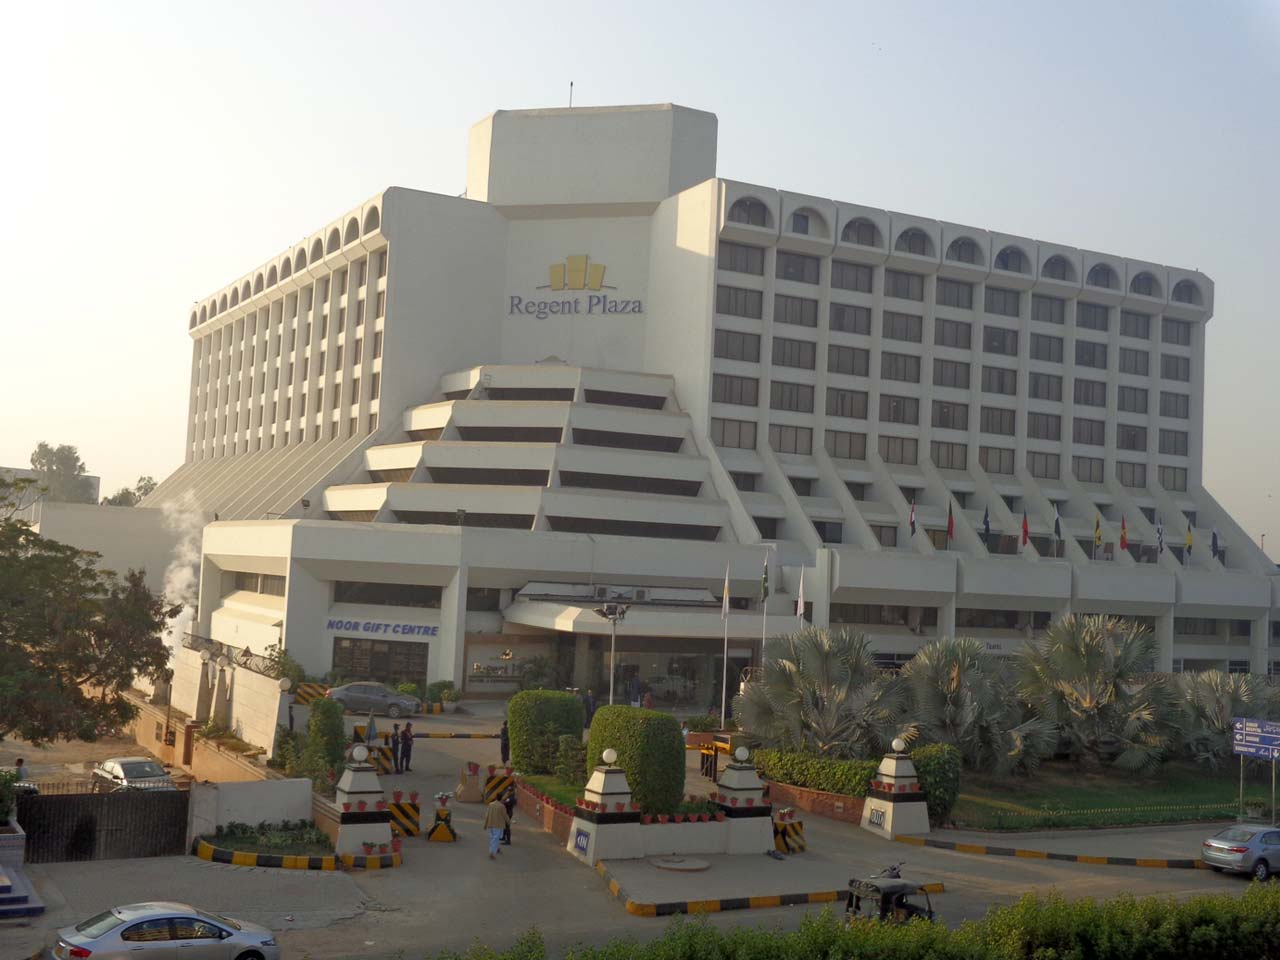 Regent Plaza Hotel before the fire